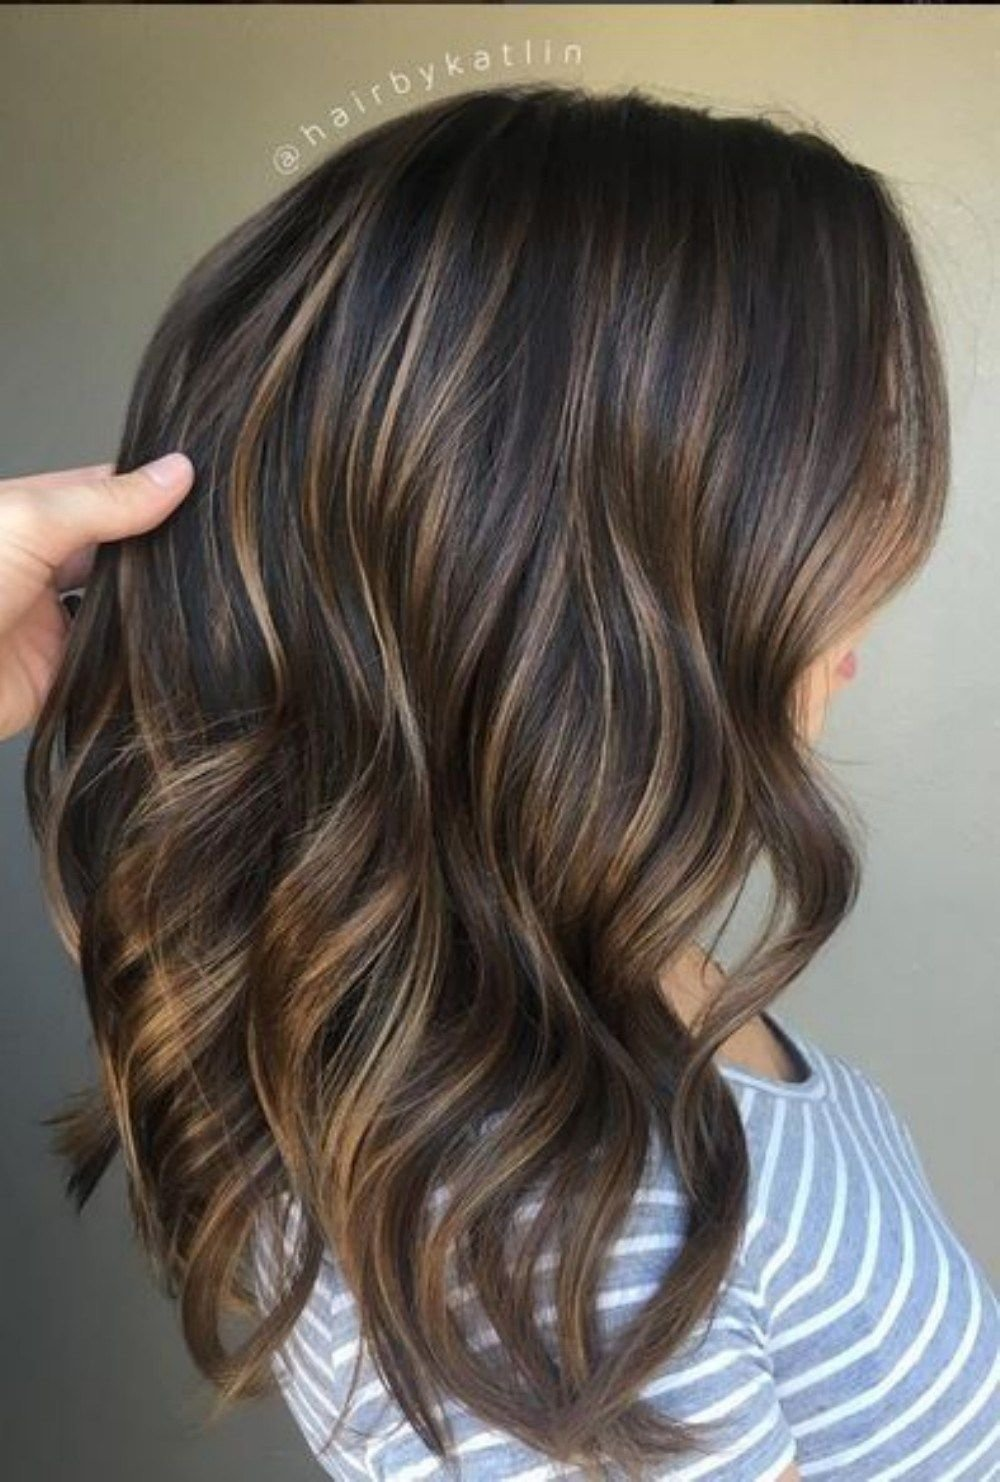 10 Ideal Hair Coloring Ideas For Long Hair top brunette hair color ideas to try 2017 17 hairstyle 9 2020